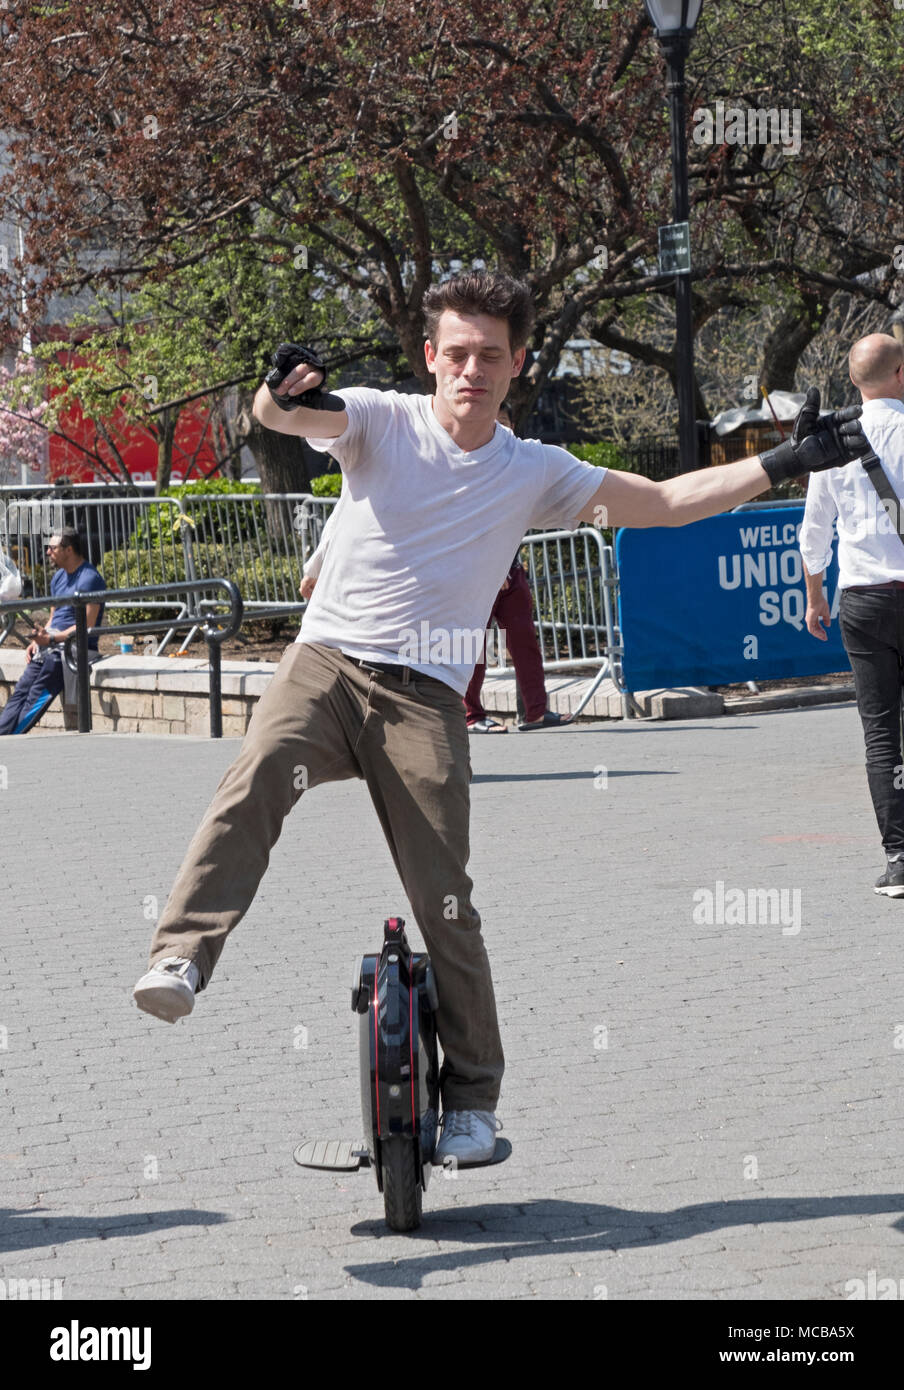 An Englishman living in New York riding an electric unicycle in Union Square Park in Manhattan, New York City. Stock Photo